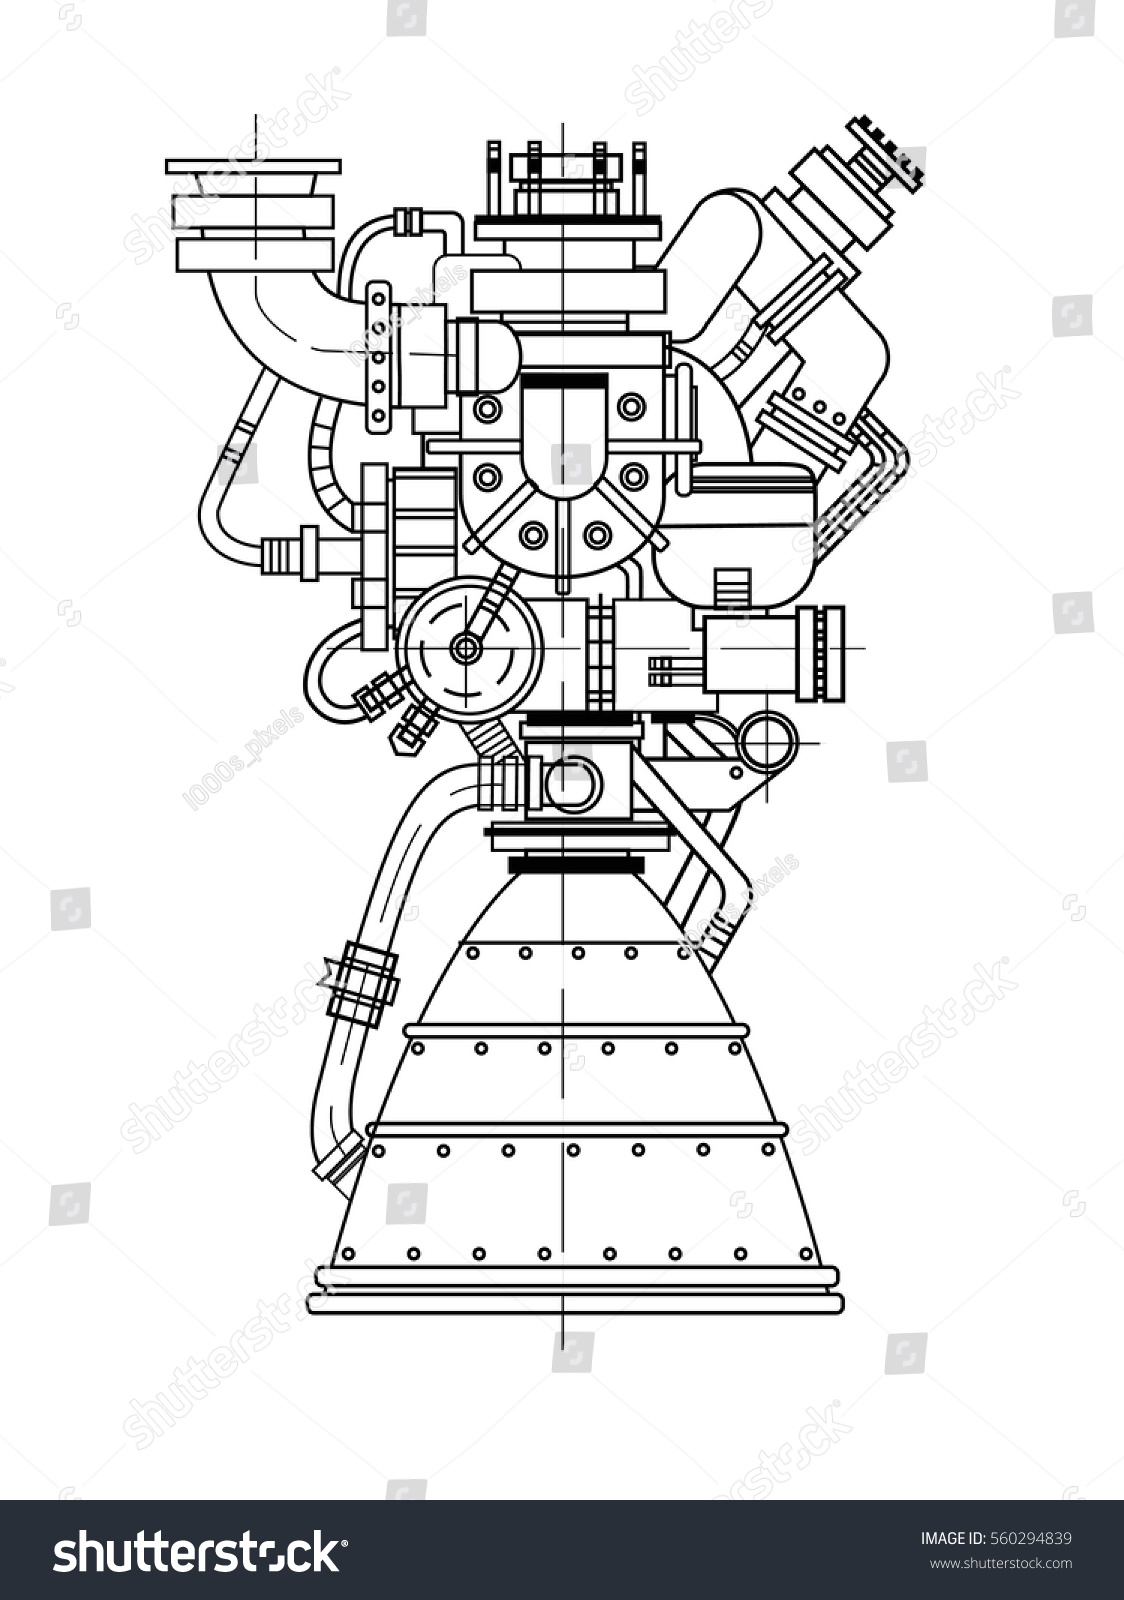 Rocket Engine Drawing On Black Background Stock Vector Royalty Free Diagram Of A Model Isolated It Can Be Used As An Illustration For